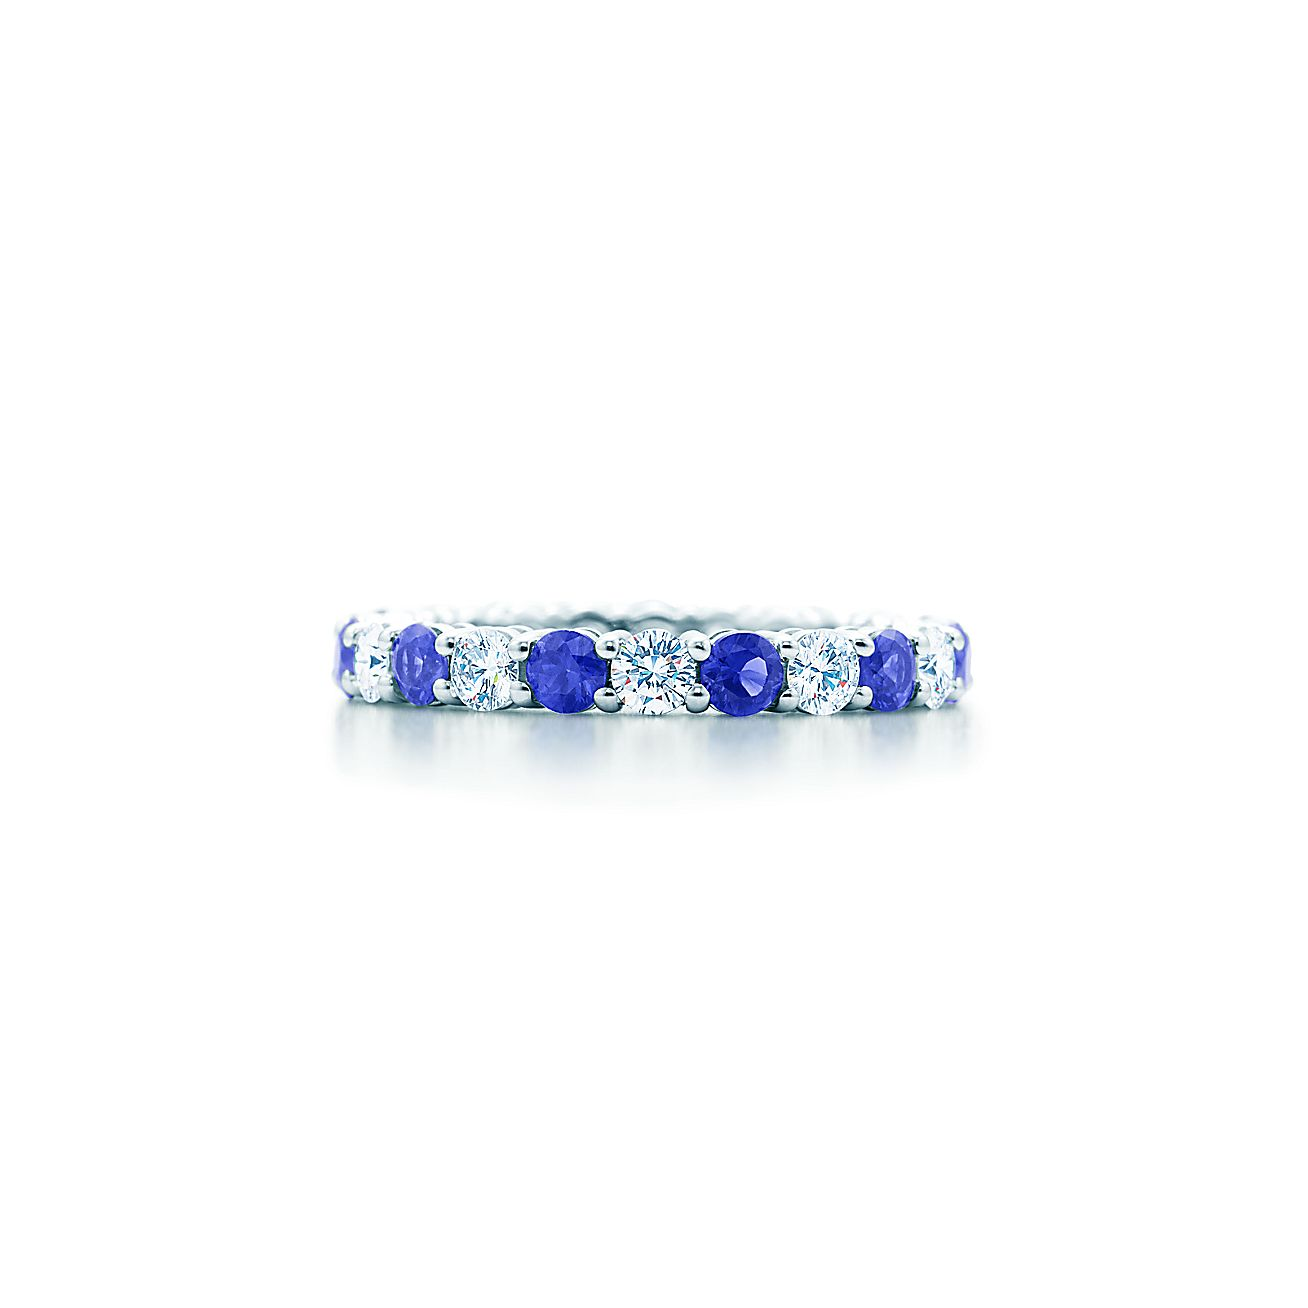 Tiffany Embrace® Band Ring In Platinum With Sapphires And Diamonds, 3 Mm  Wide  Tiffany & Co